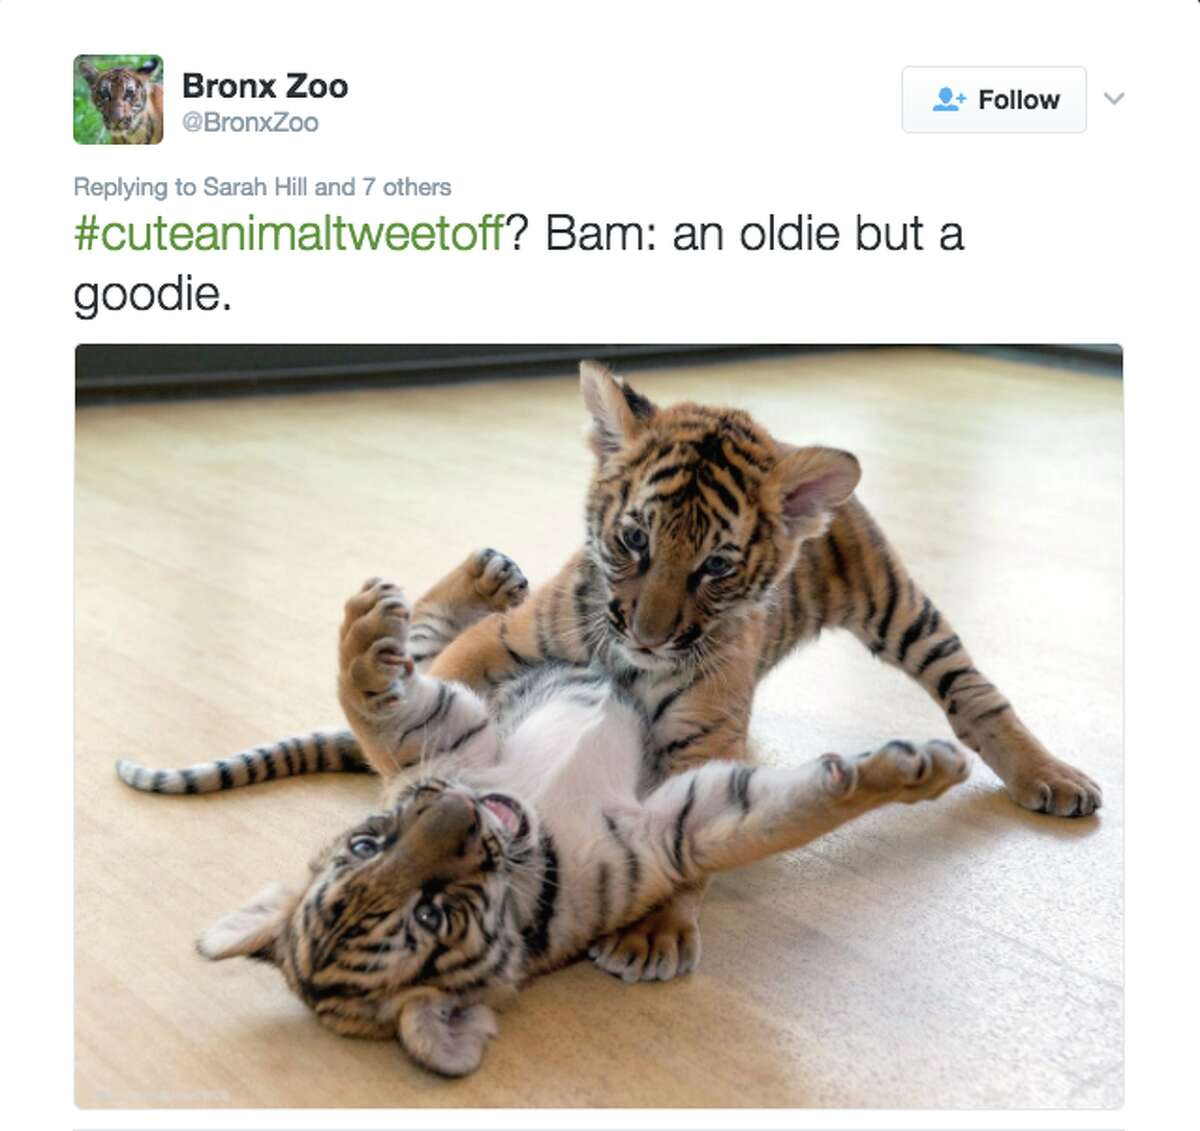 Then a game took shape with a couple of tiger cubs from the Bronx Zoo. Twitter